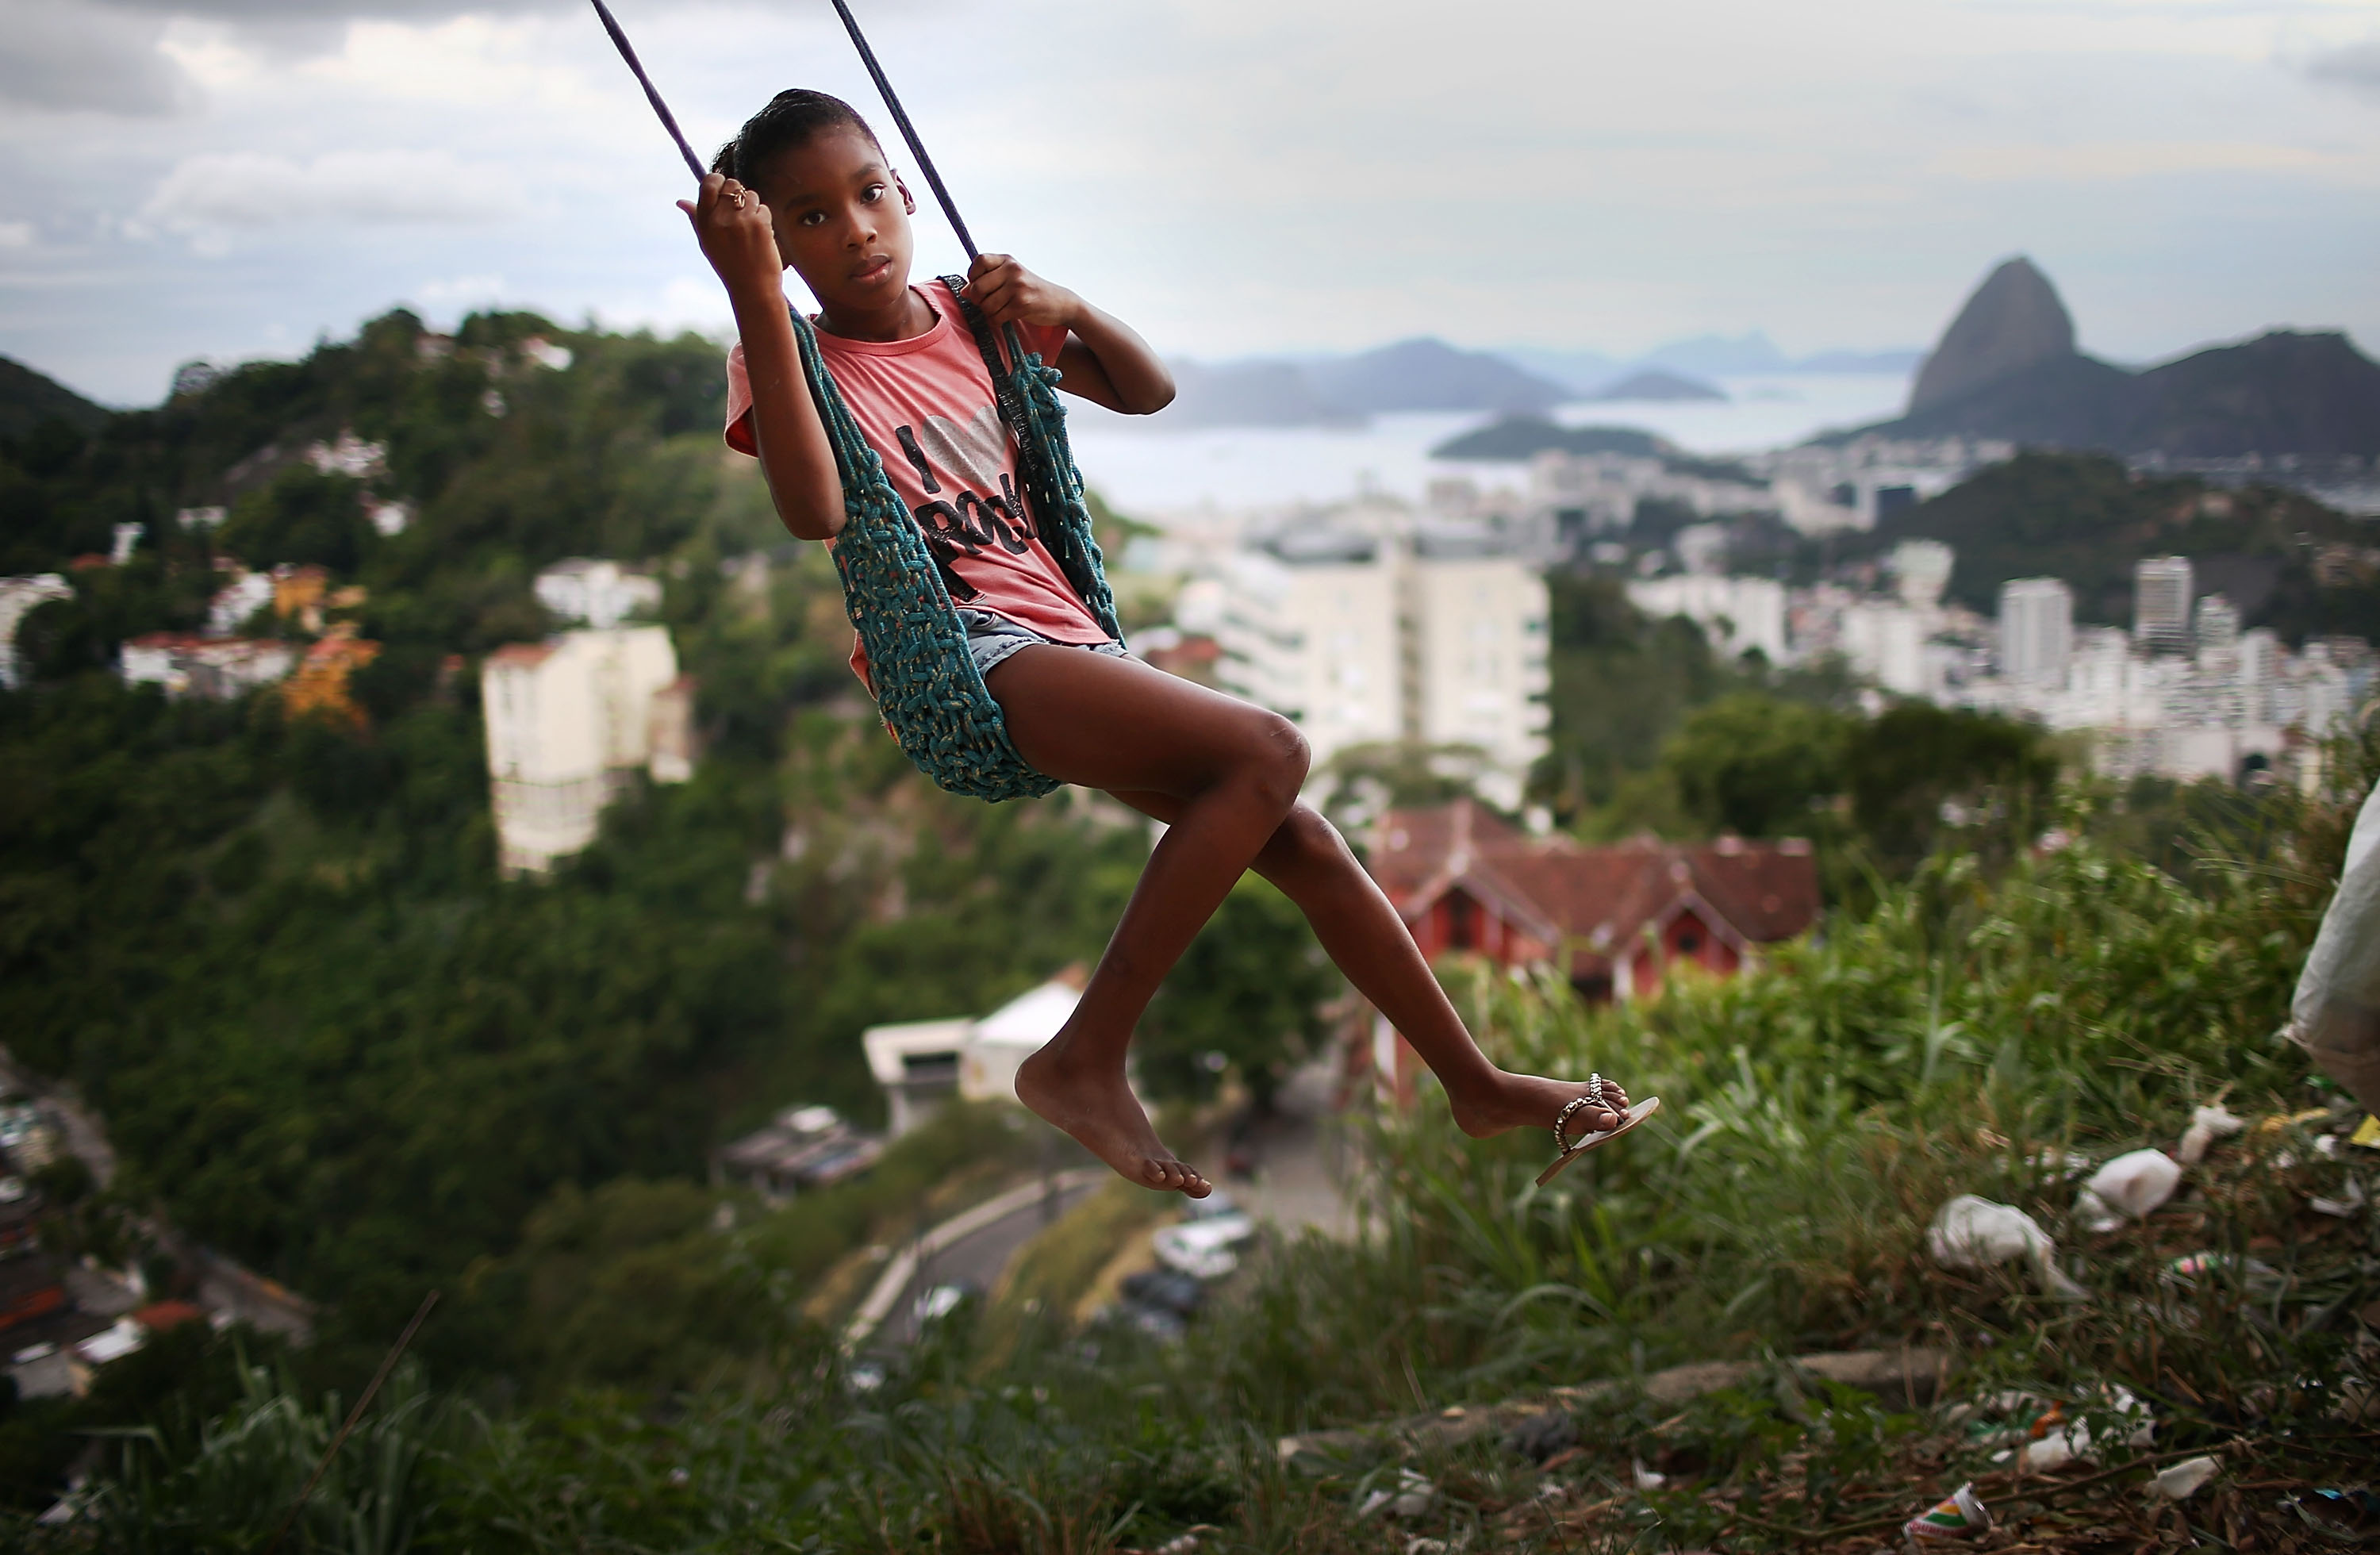 A child plays on a swing in the Prazeres pacified favela community on March 22, 2014 in Rio de Janeiro.